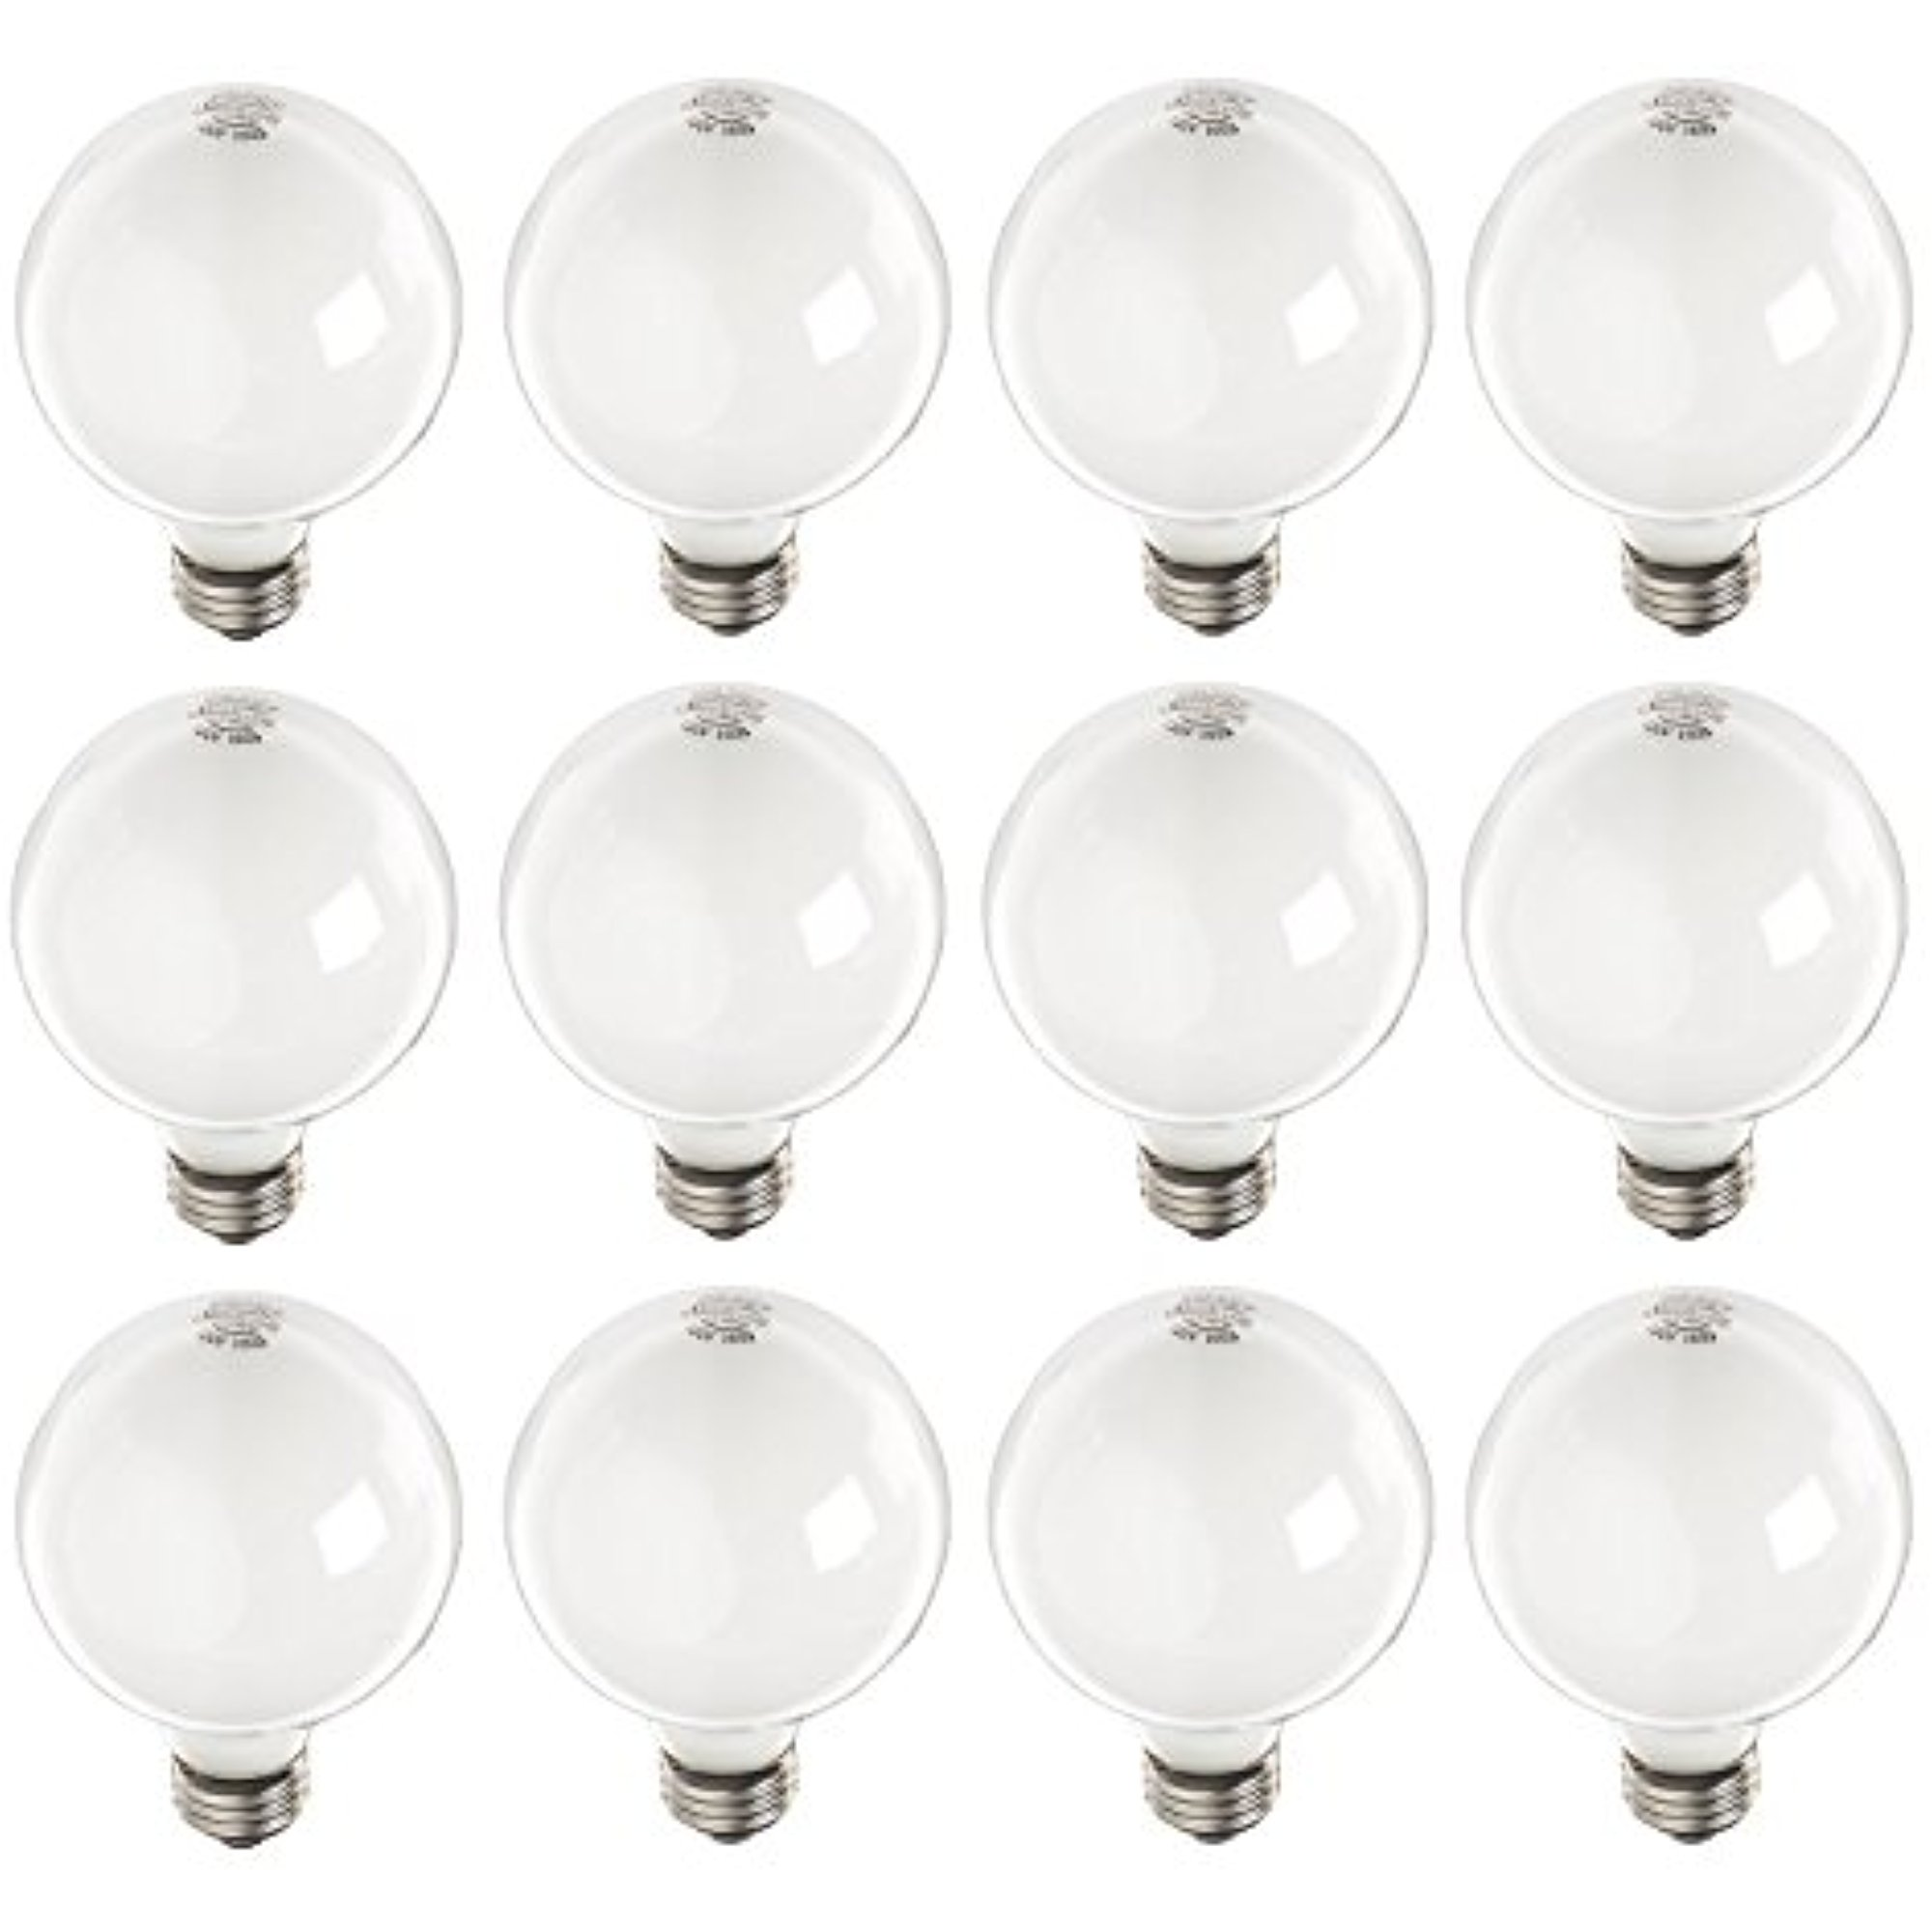 12 Pack Soft White Globe Bulbs 40-Watt 370 Lumens 130-Volt G25